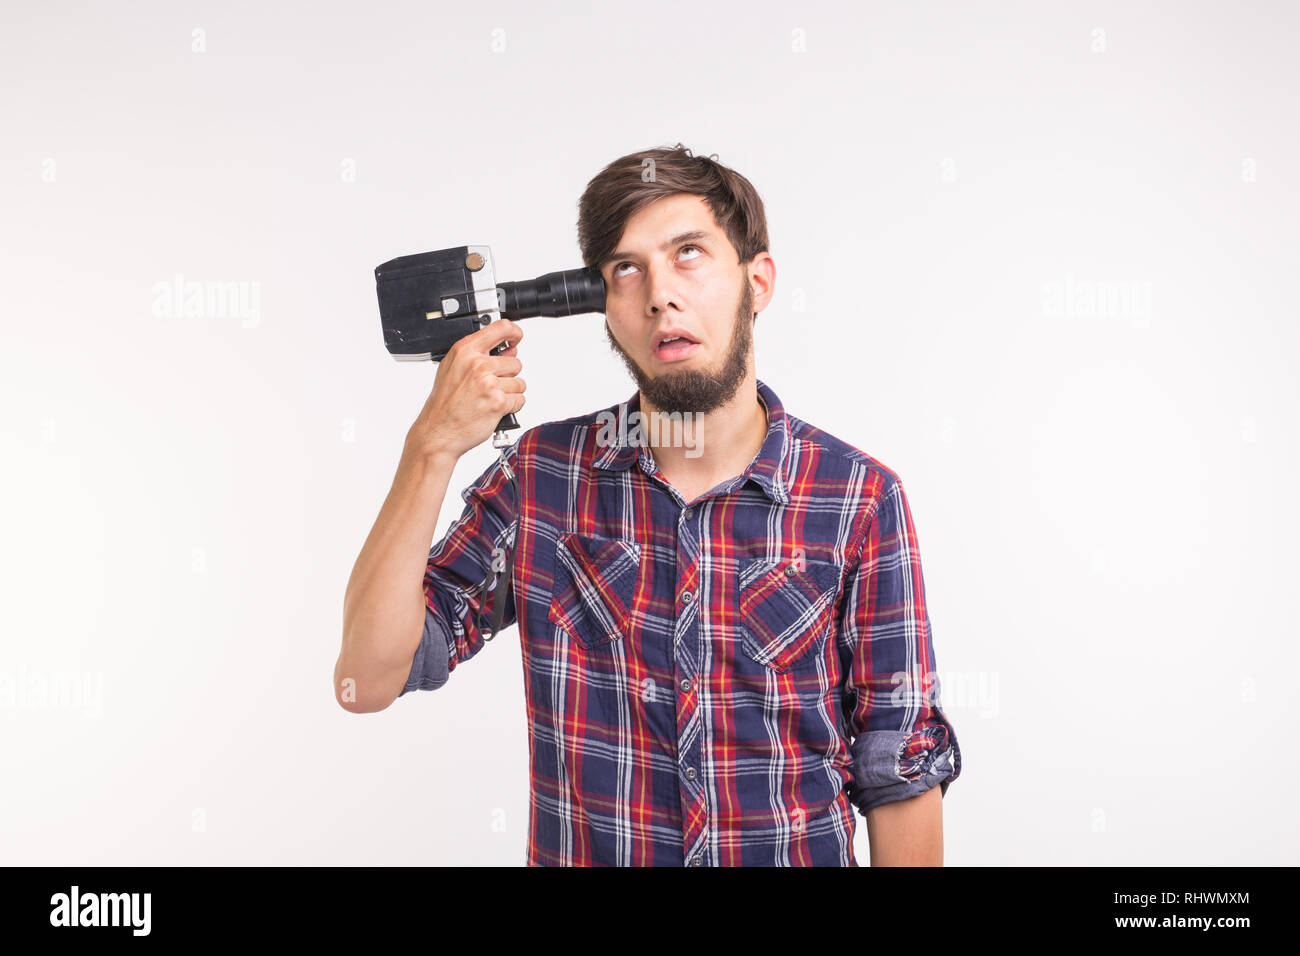 Joke, photo and gesture concept - young funny silly man posing with camera near his head on white background - Stock Image